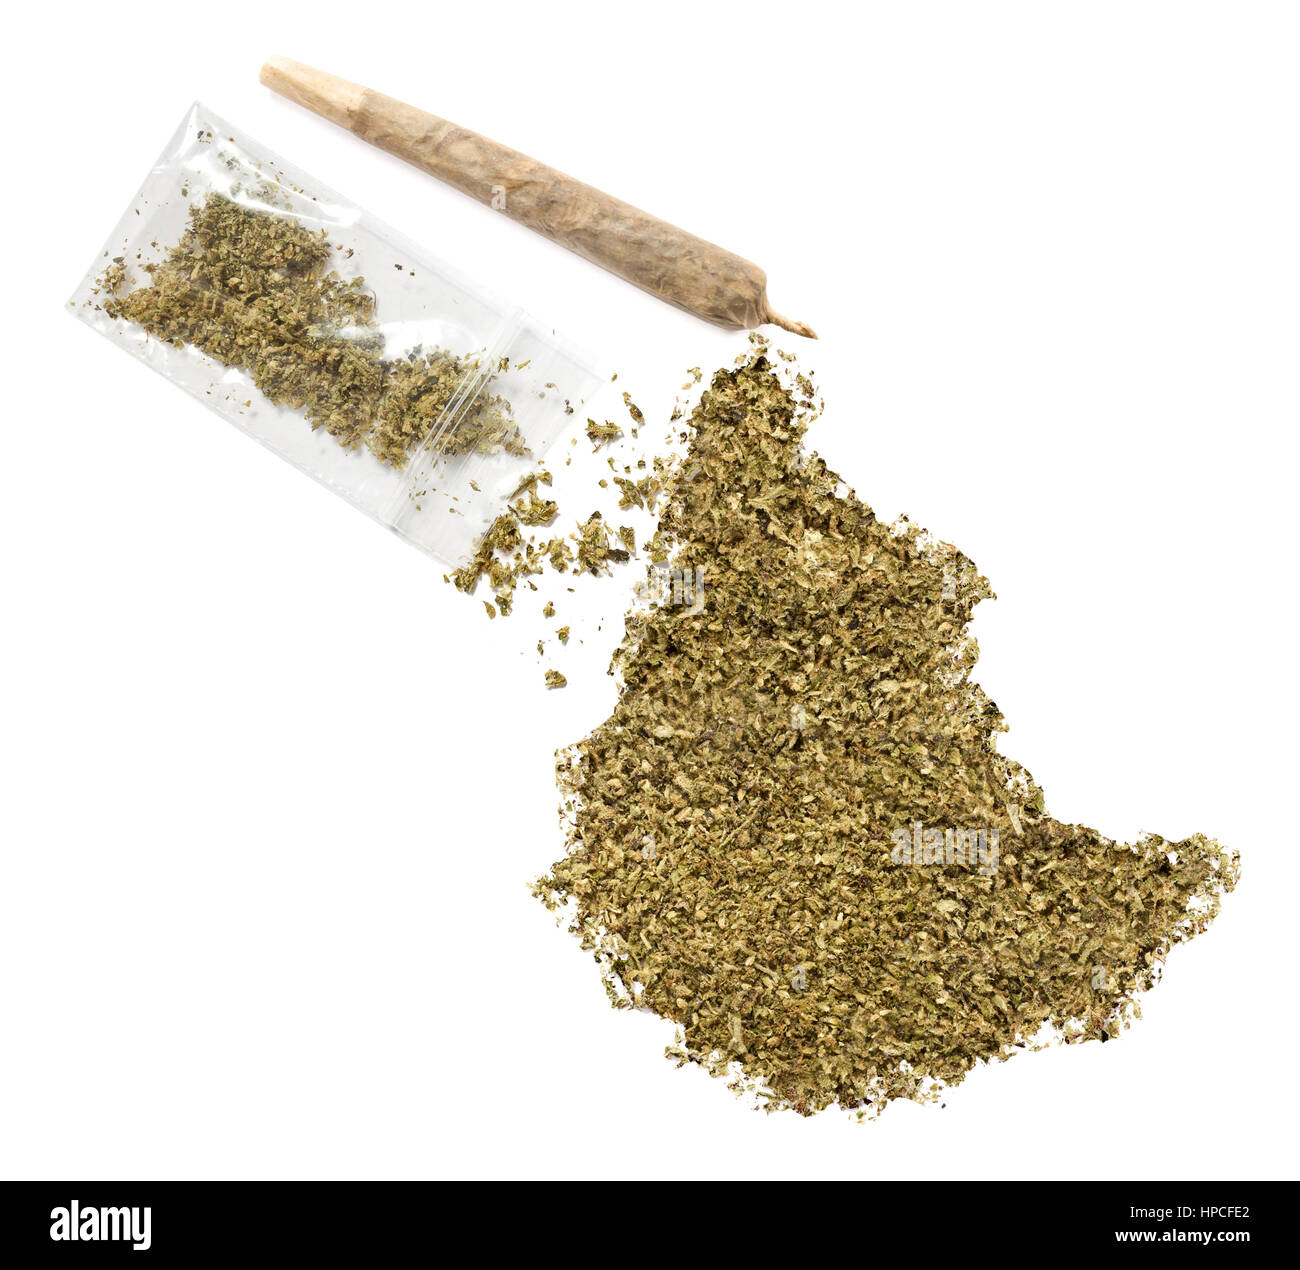 Grinded weed shaped as Ethiopia and a joint.(series) - Stock Image